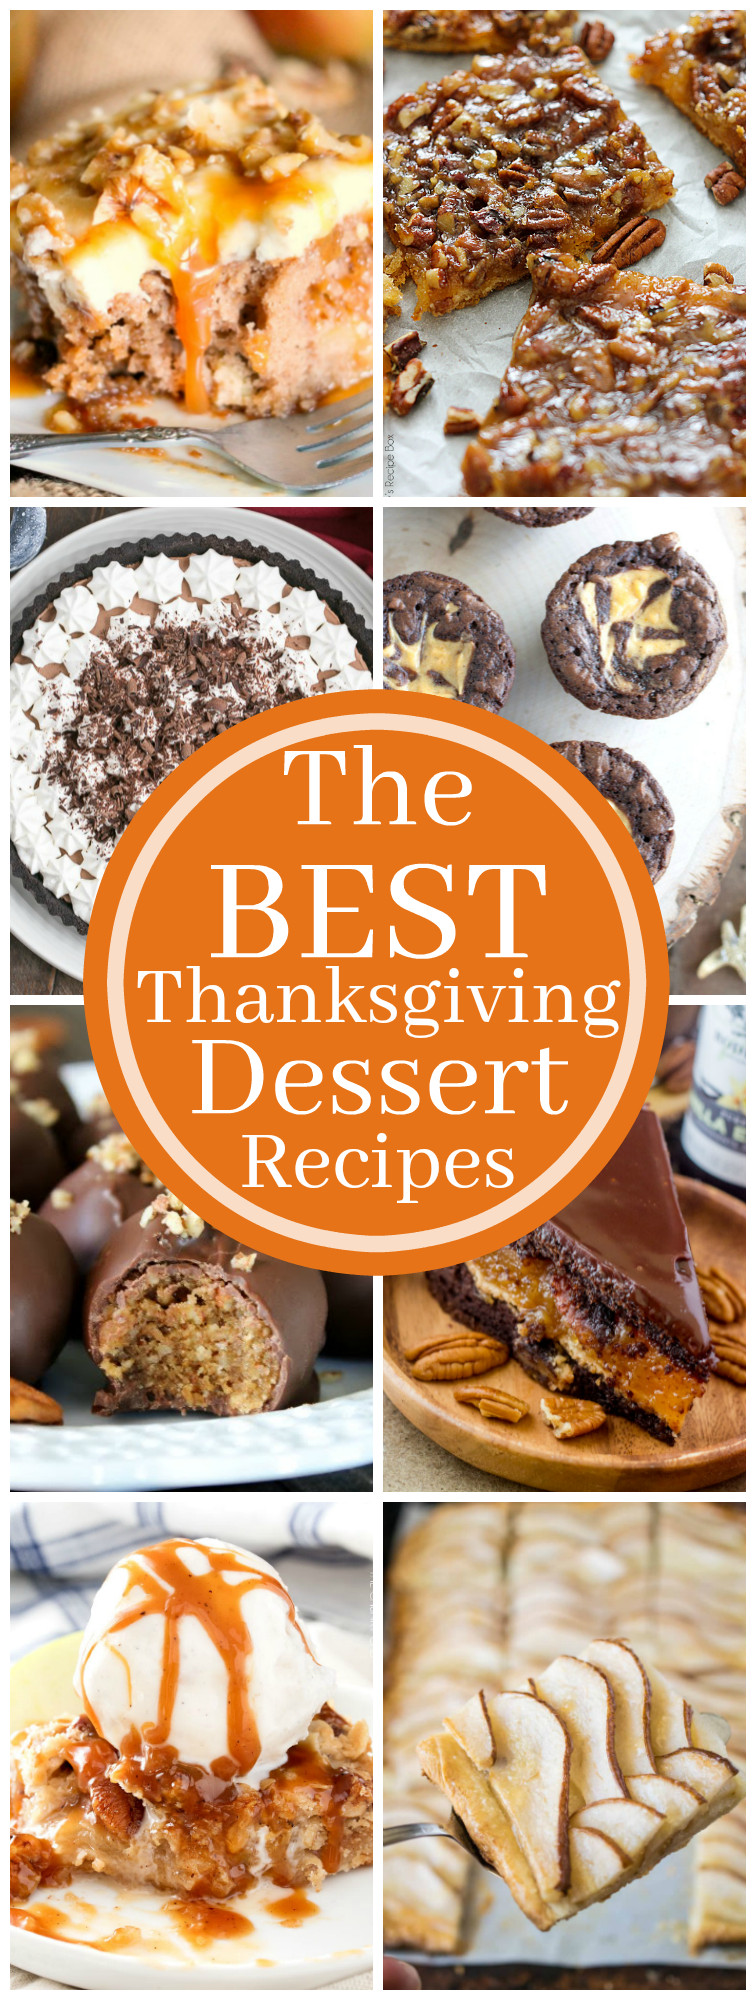 The Best Turkey Recipes For Thanksgiving  The Best Thanksgiving Dessert Recipes Tornadough Alli